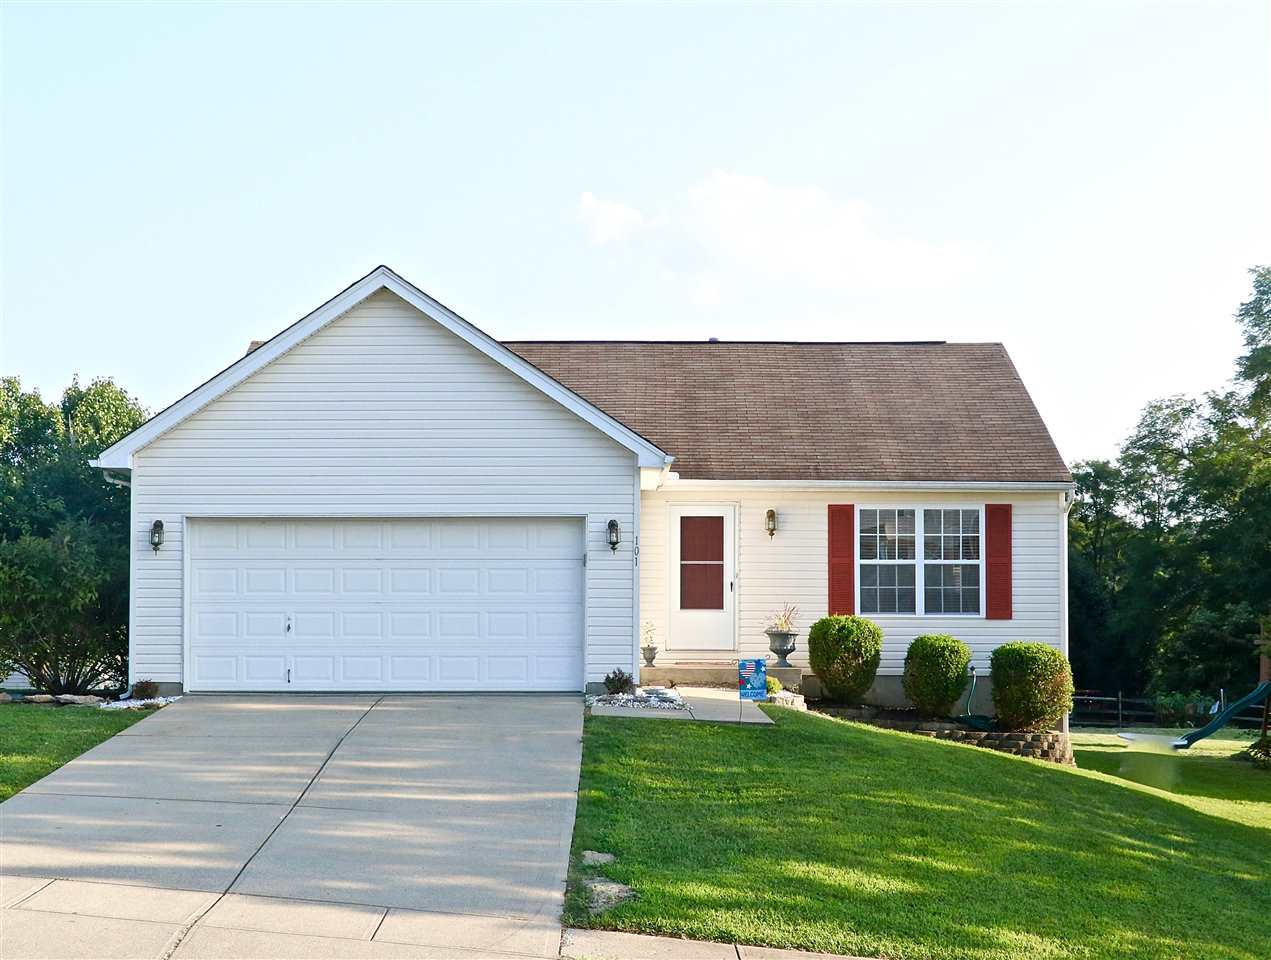 Photo 1 for 101 Roman Way Independence, KY 41051